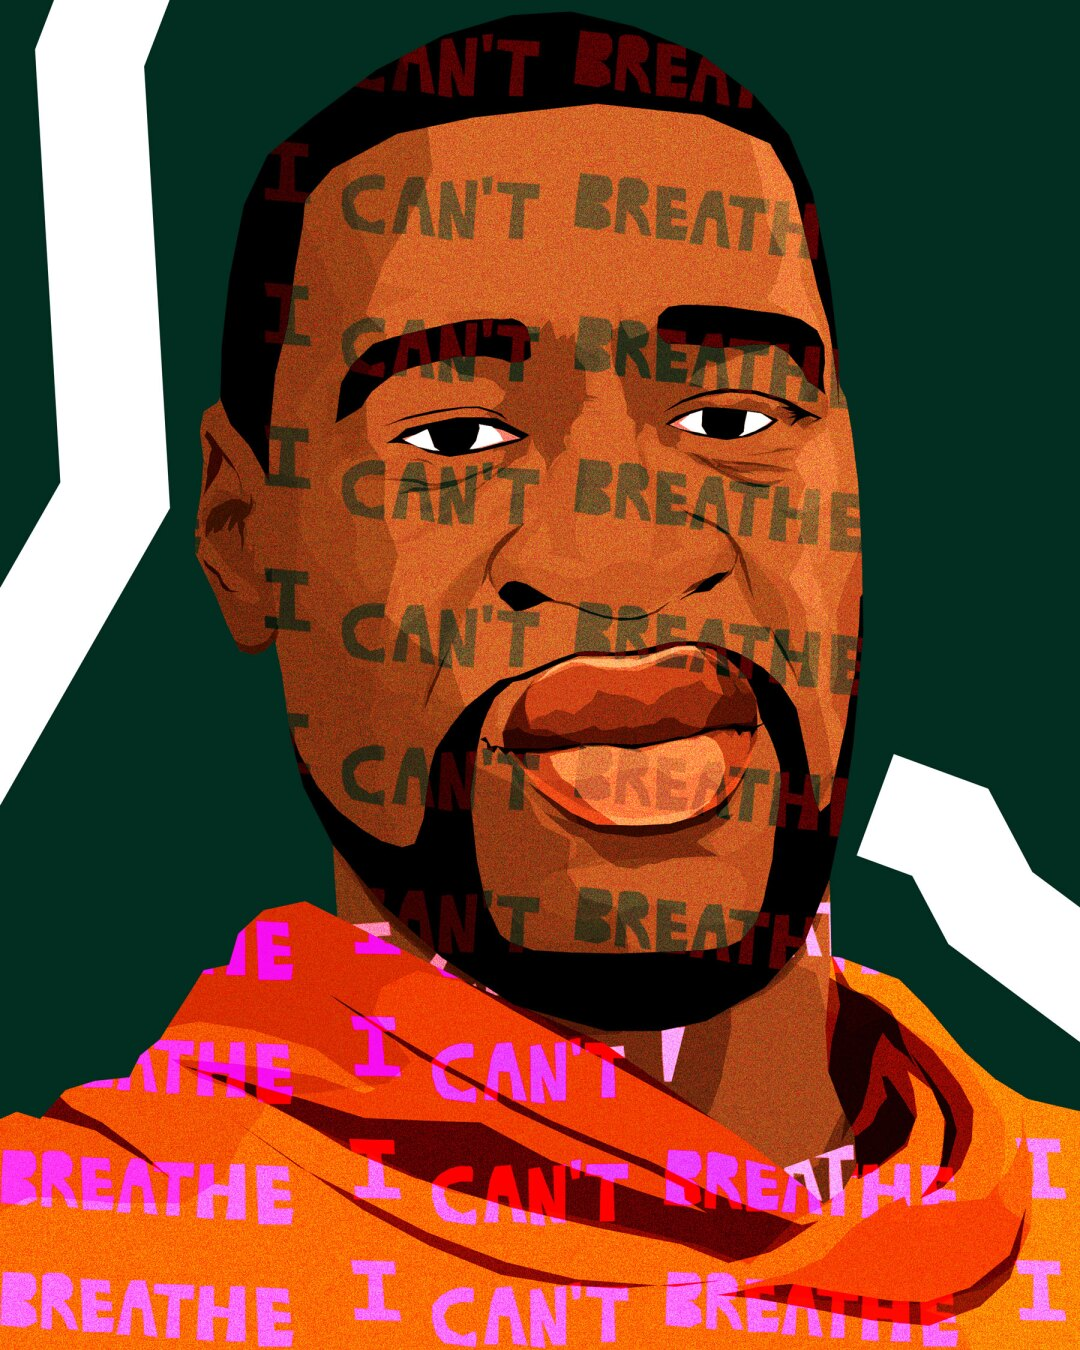 Black lives matter illustration of George Floyd